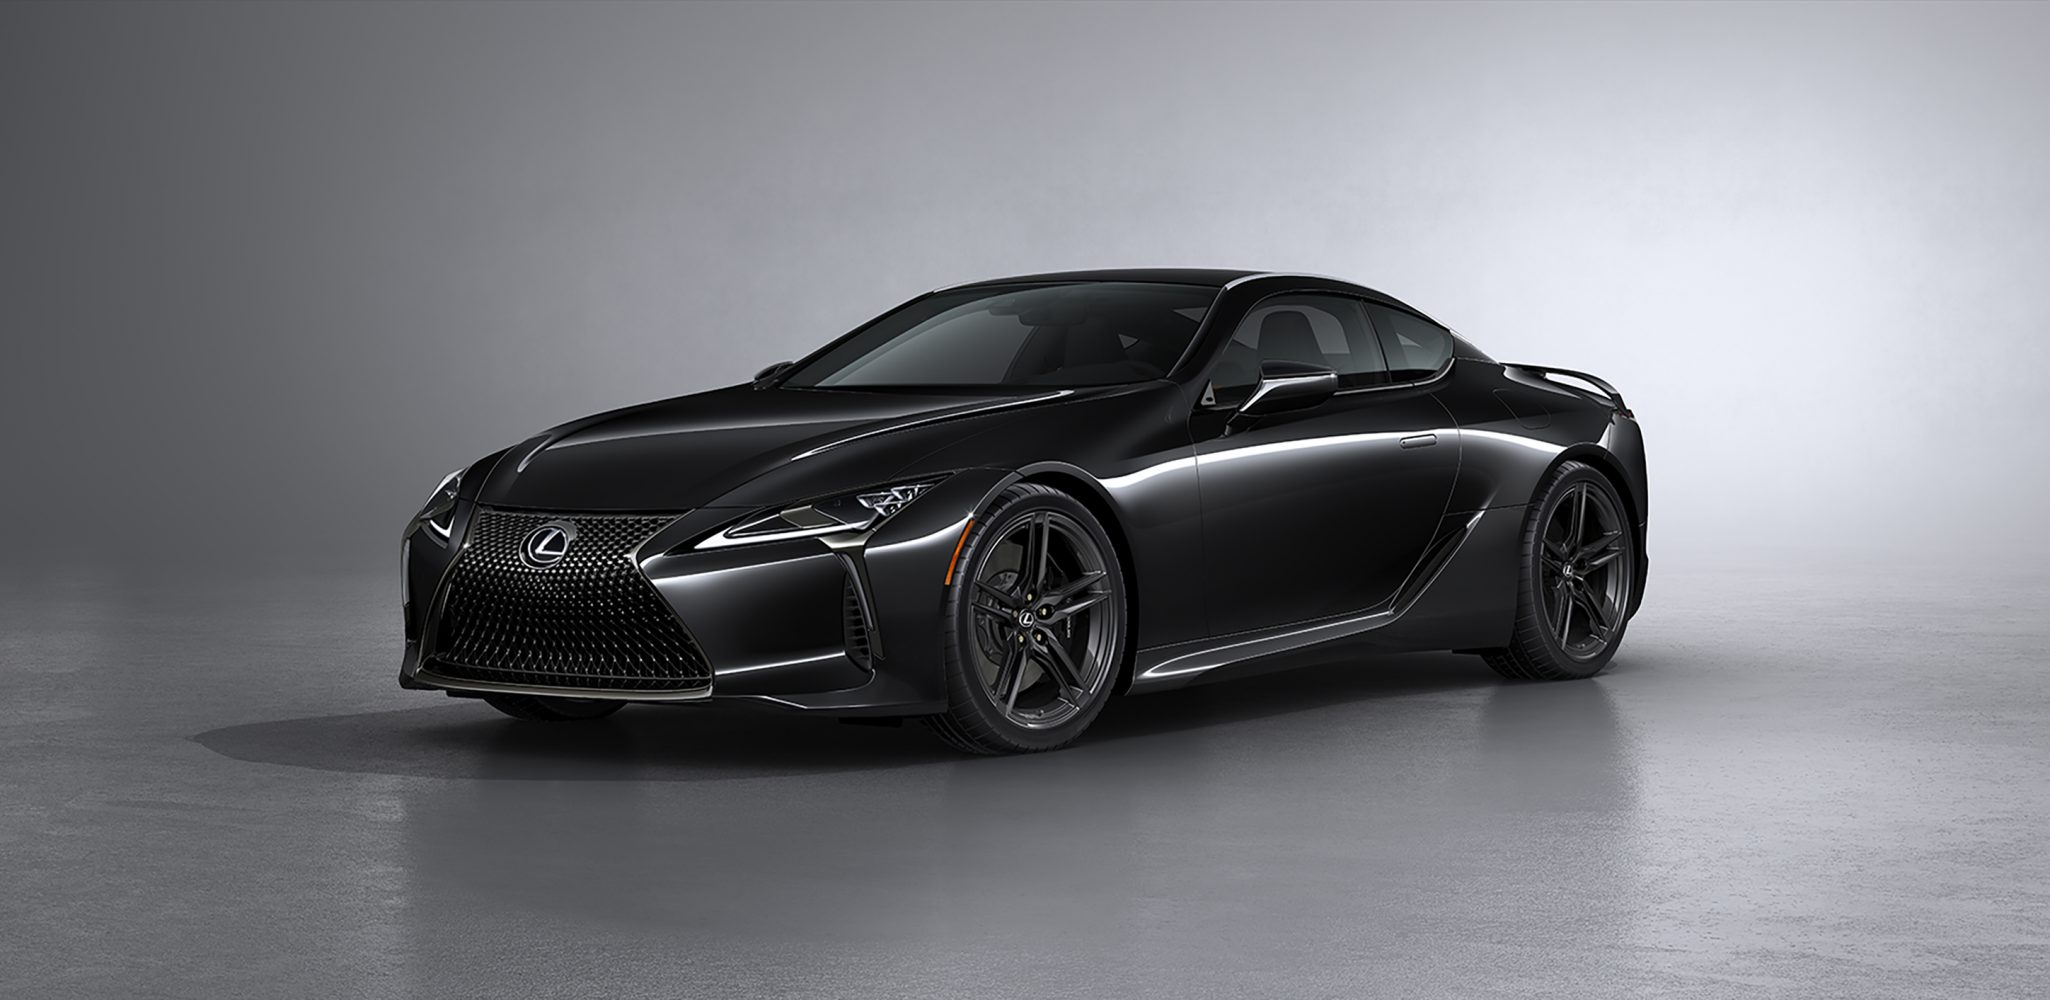 2021 LEXUS LC 500 INSPIRATION SERIES: PERFORMANCE LUXURY TAKES FLIGHT